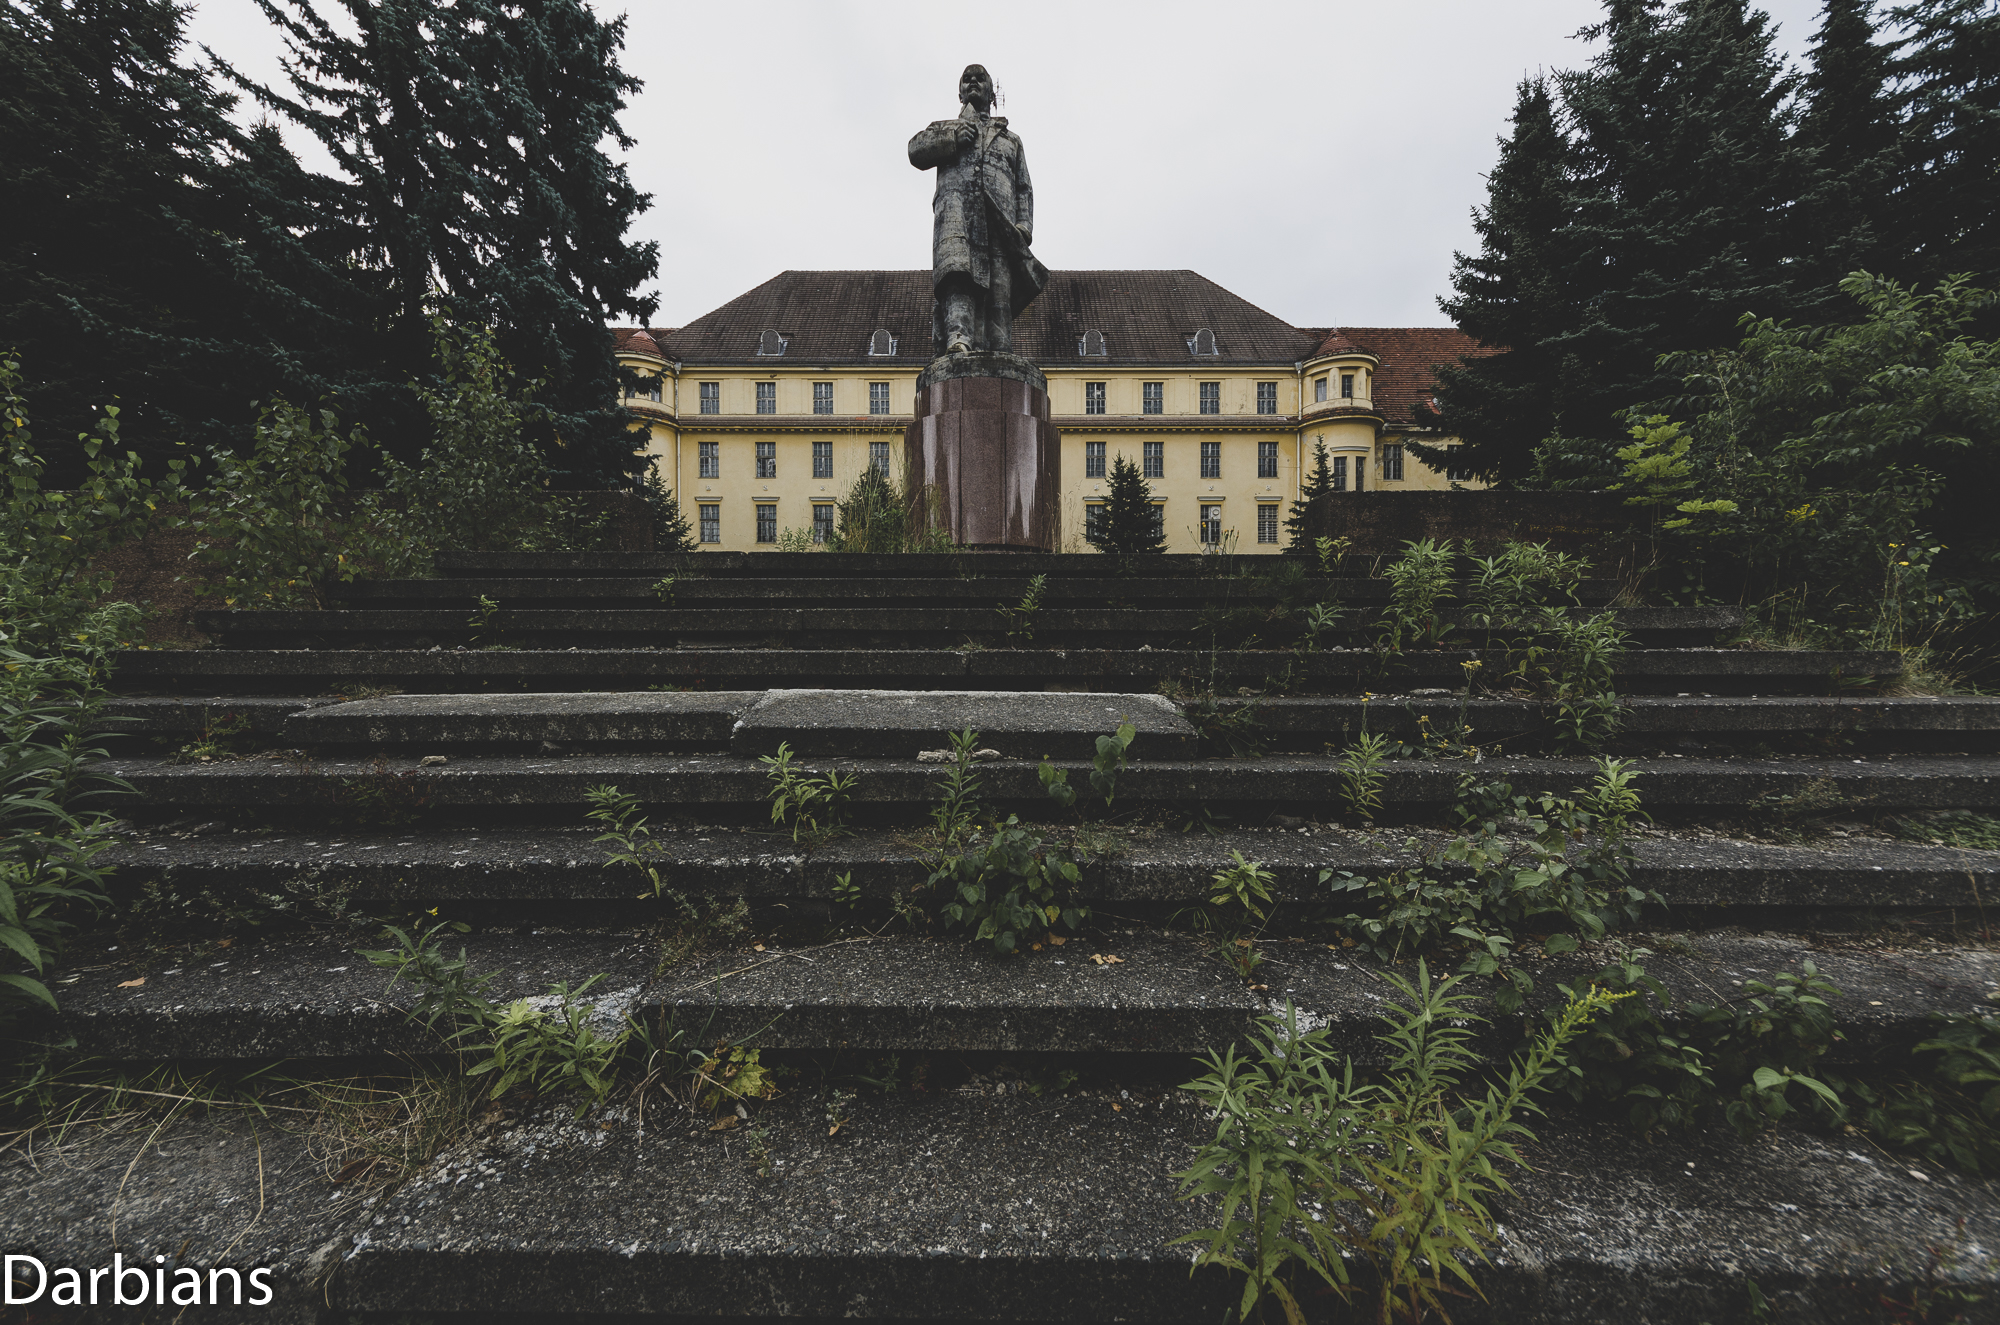 Haus Der Offiziere Wünsdorf Main Building. External with Lenin statue.